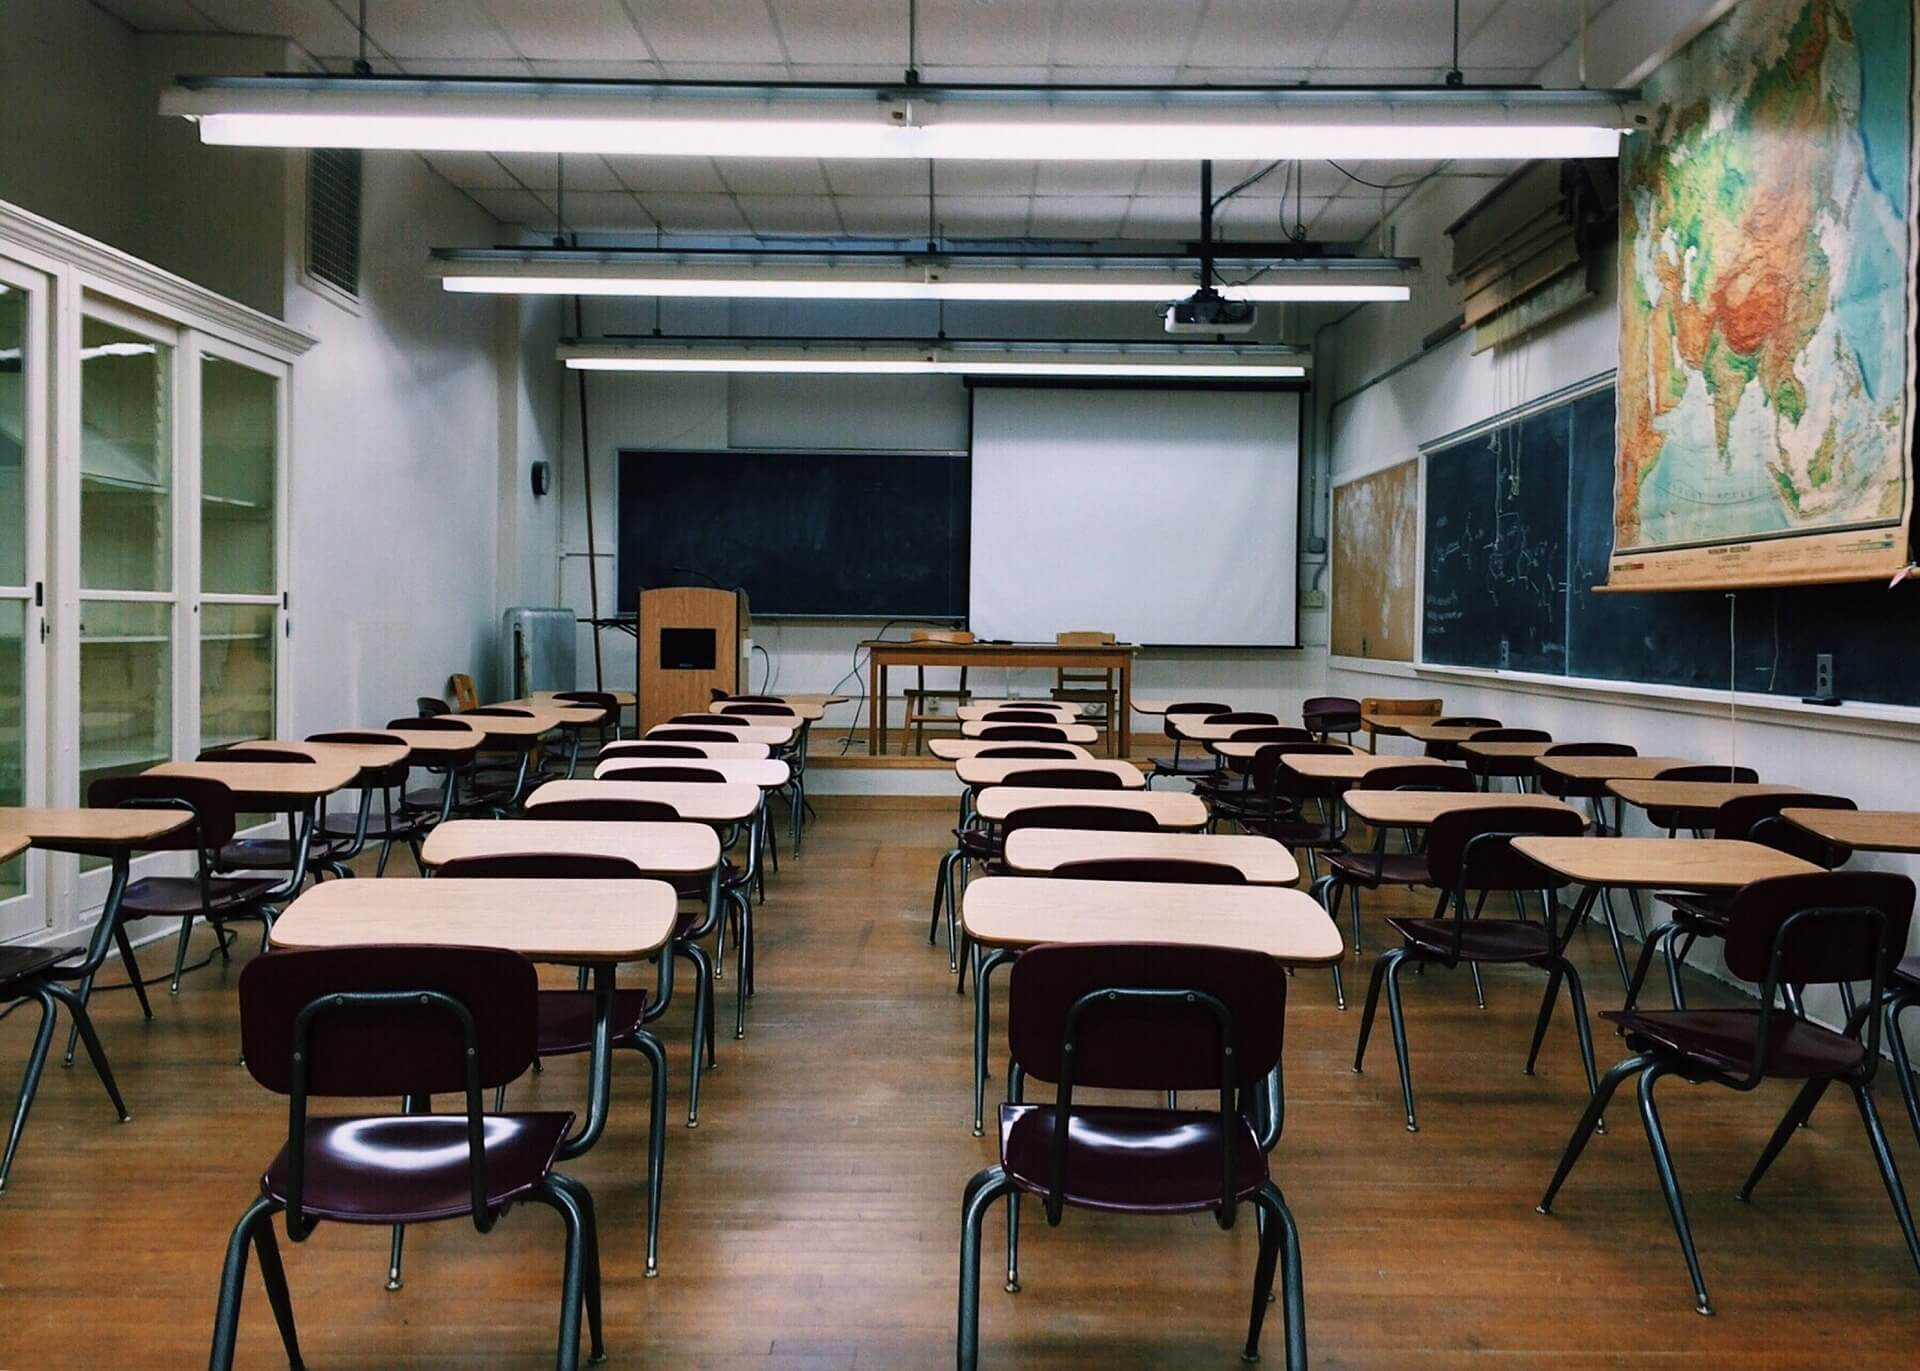 a very large classroom